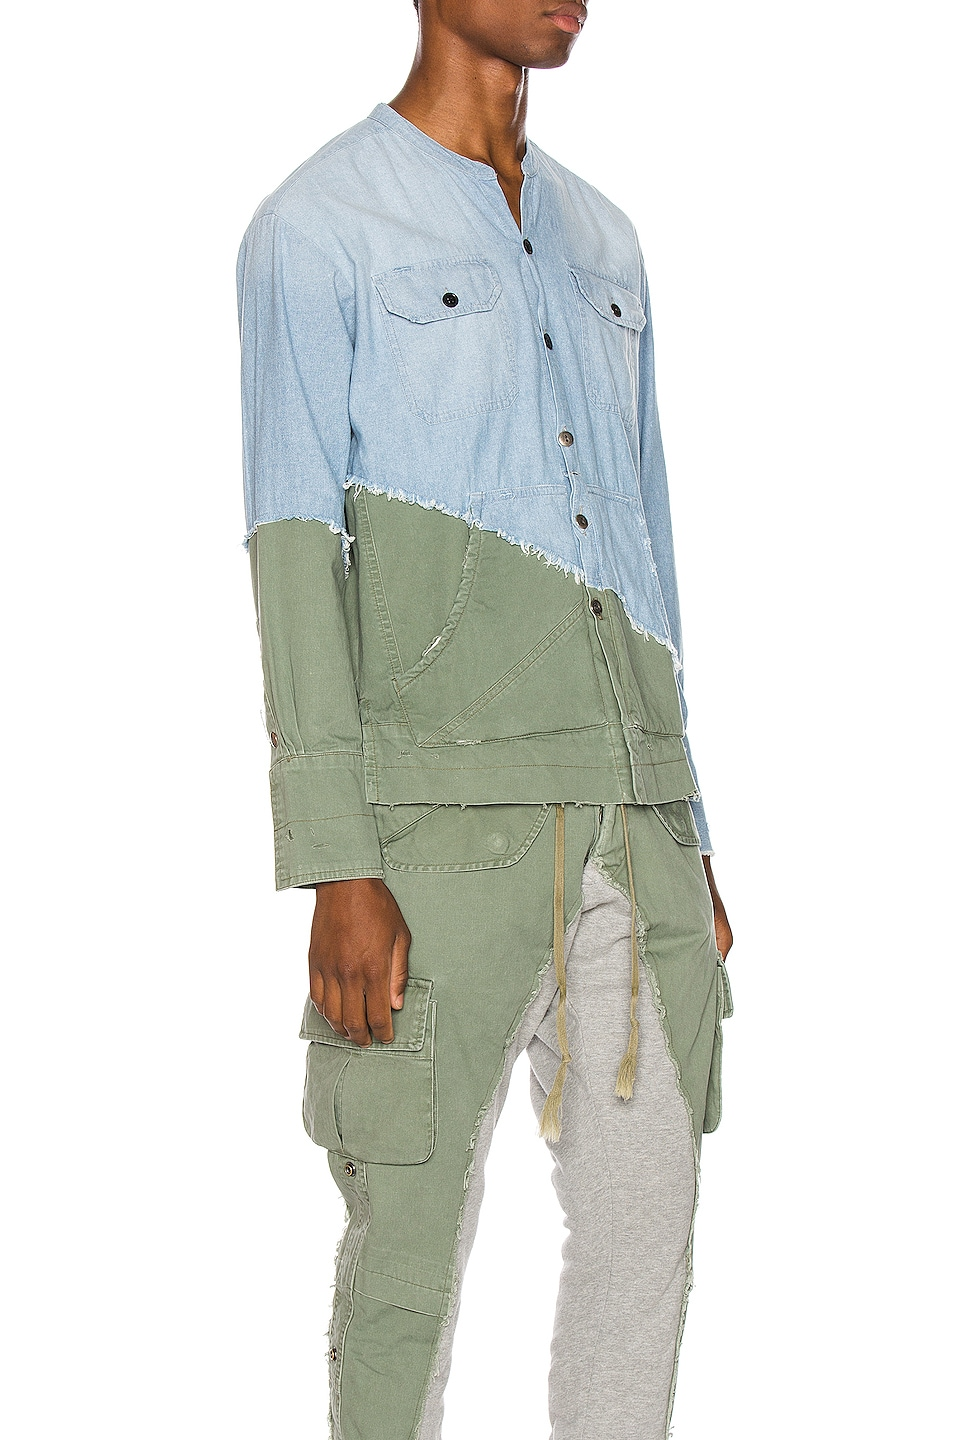 Image 2 of Greg Lauren Army Studio Shirt in Light Blue & Army